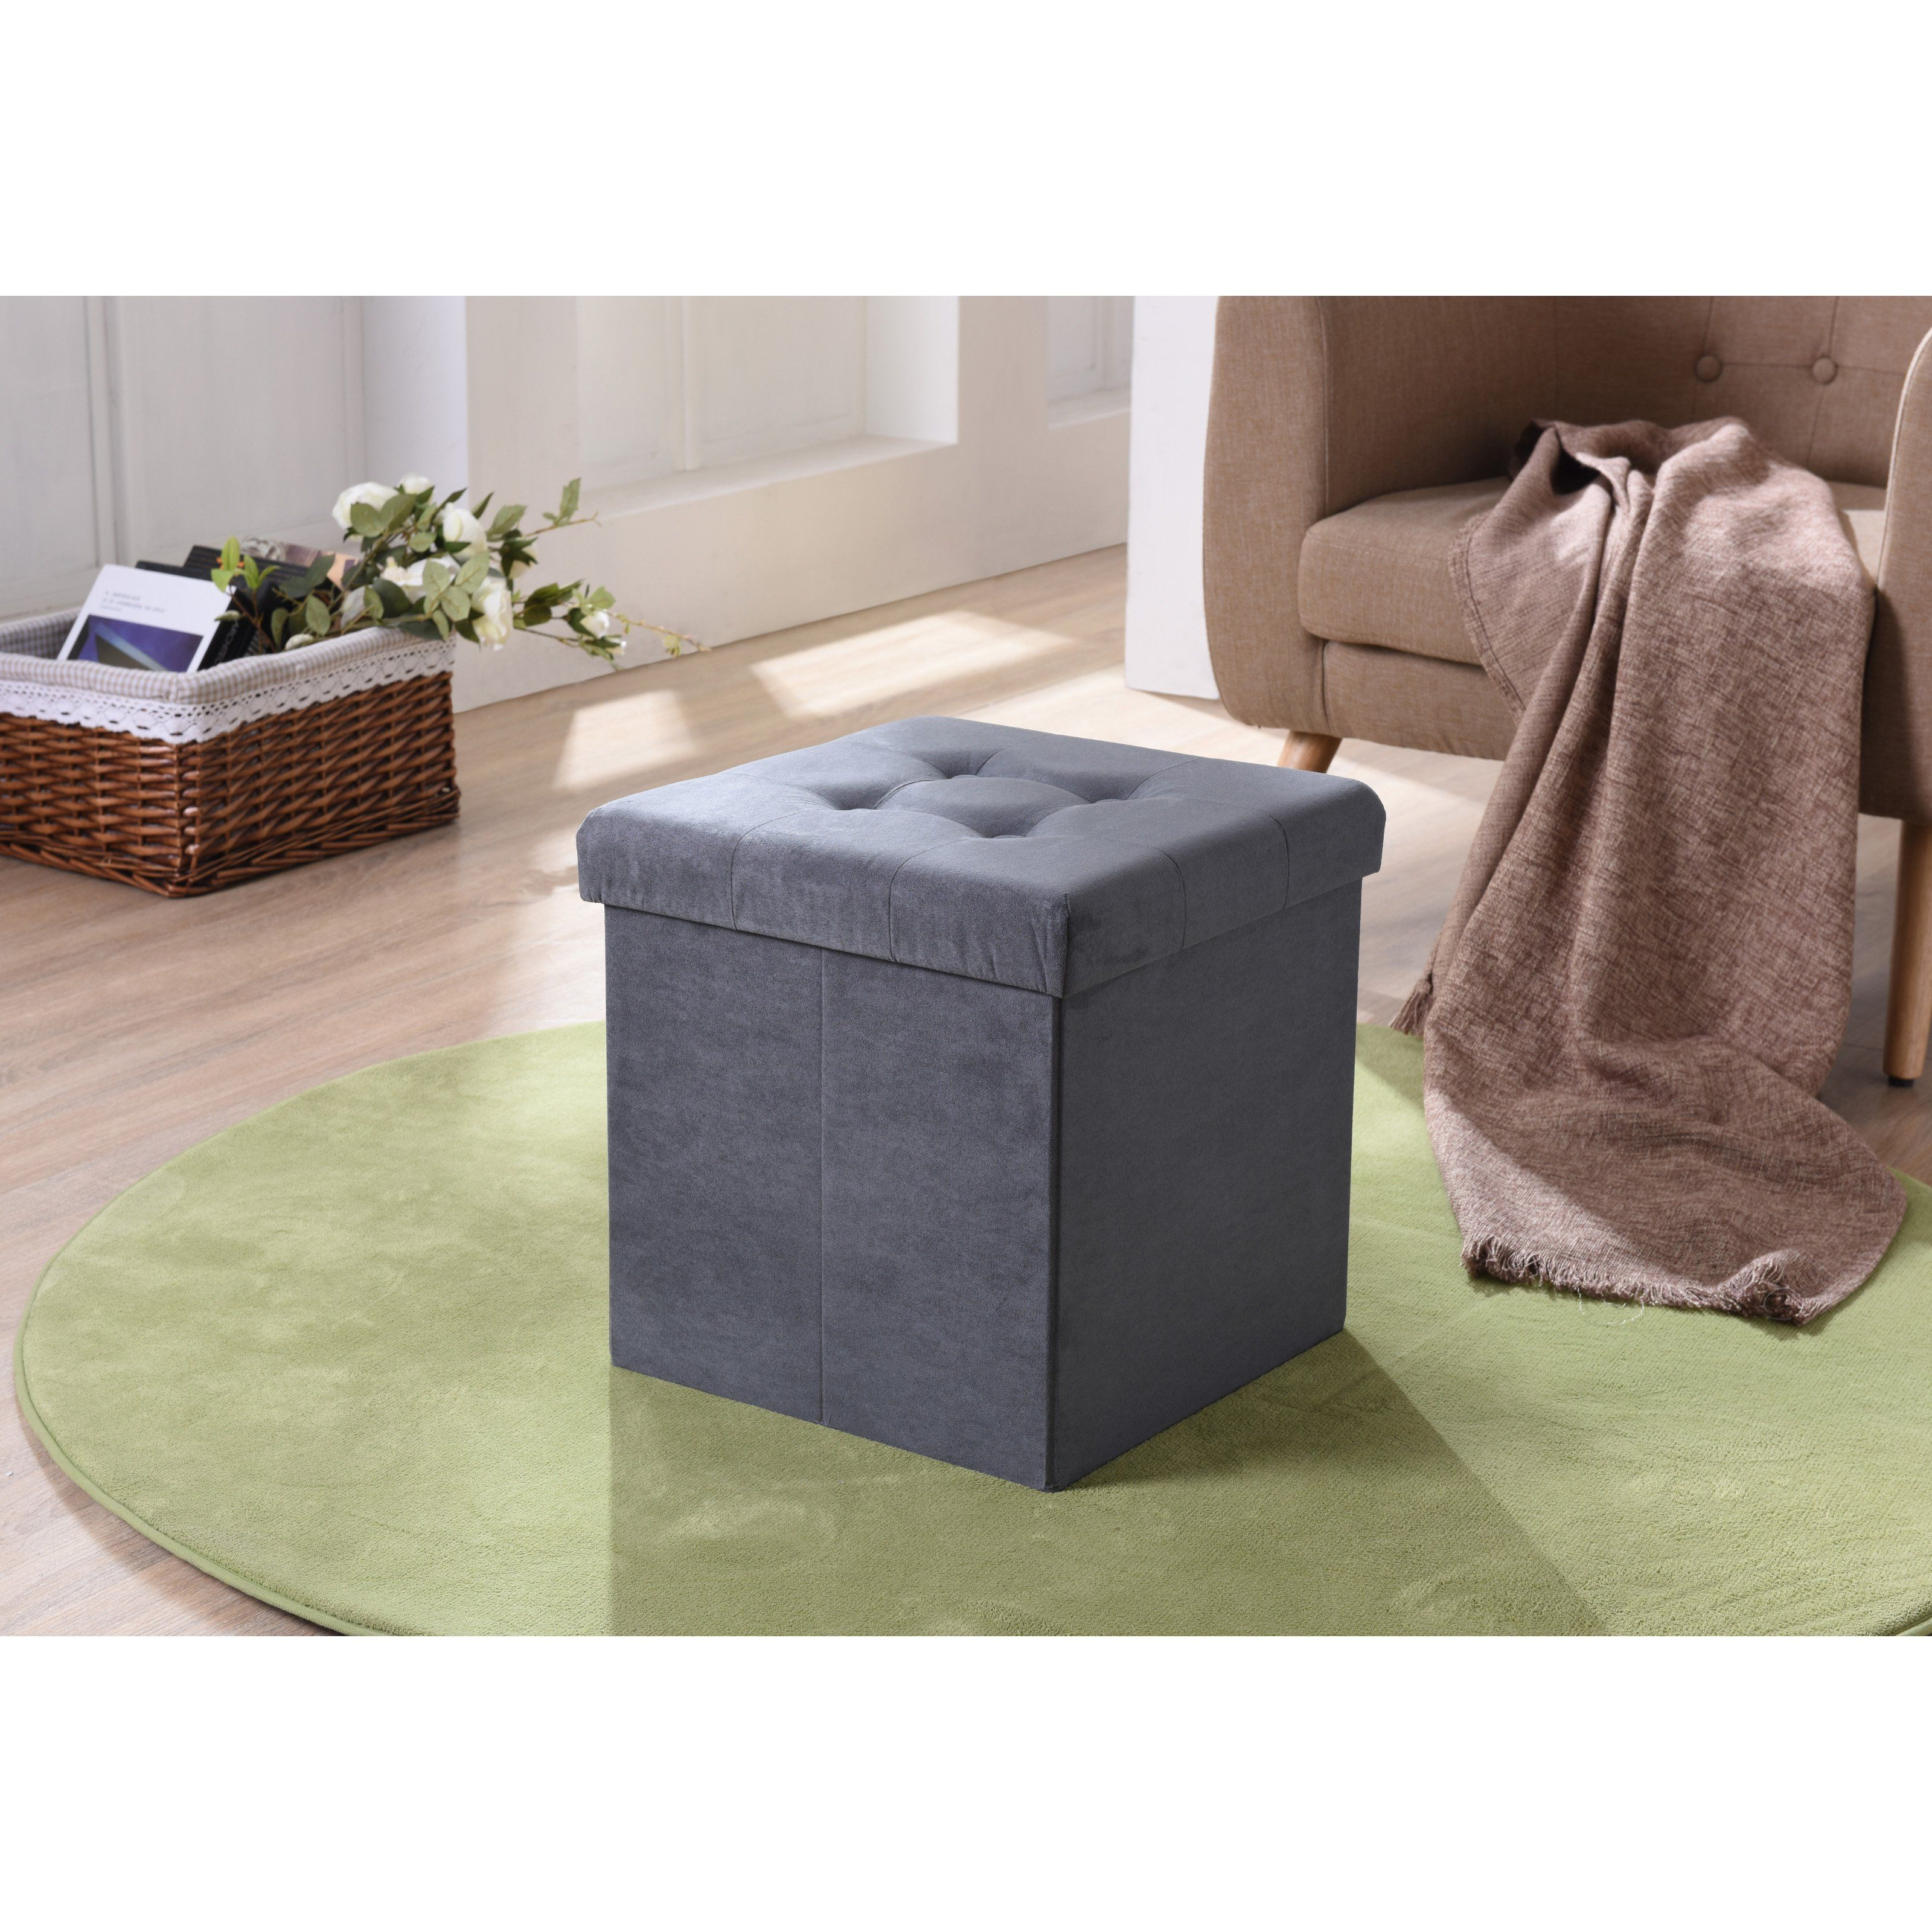 Stupendous Hodedah Imports Suede Foldable Storage Ottoman Hi1250 Grey Gamerscity Chair Design For Home Gamerscityorg